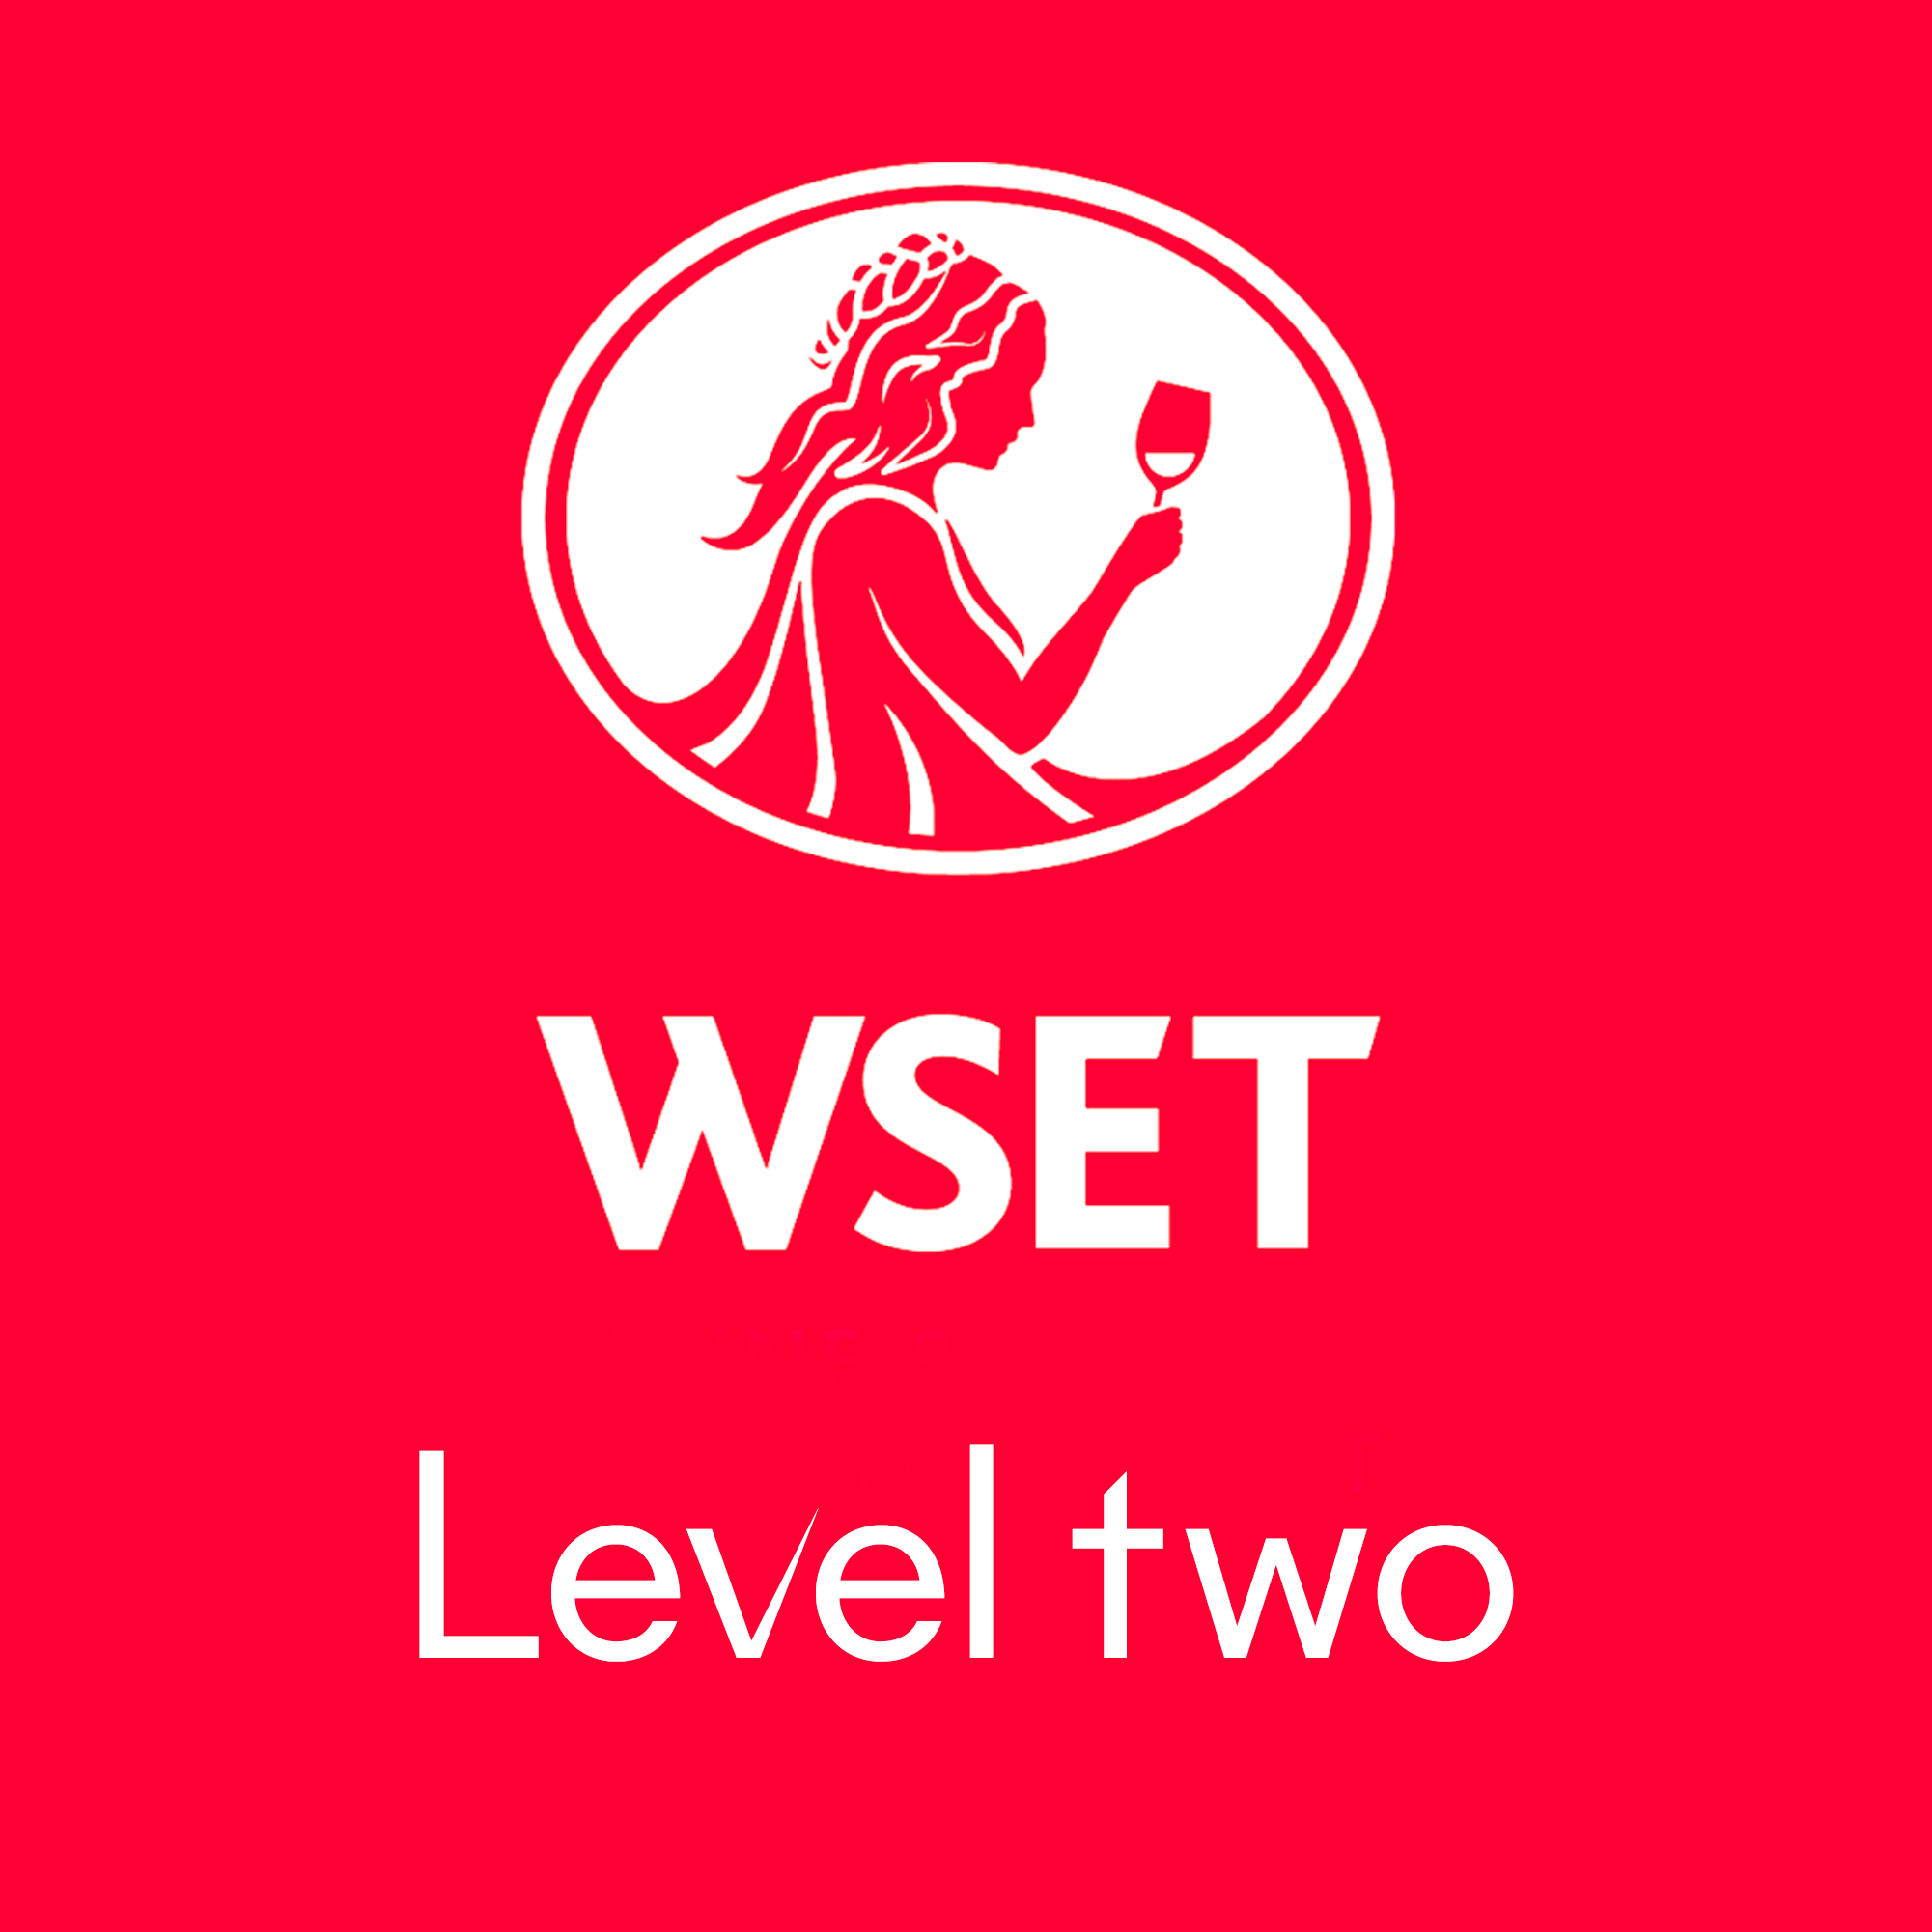 wset level two